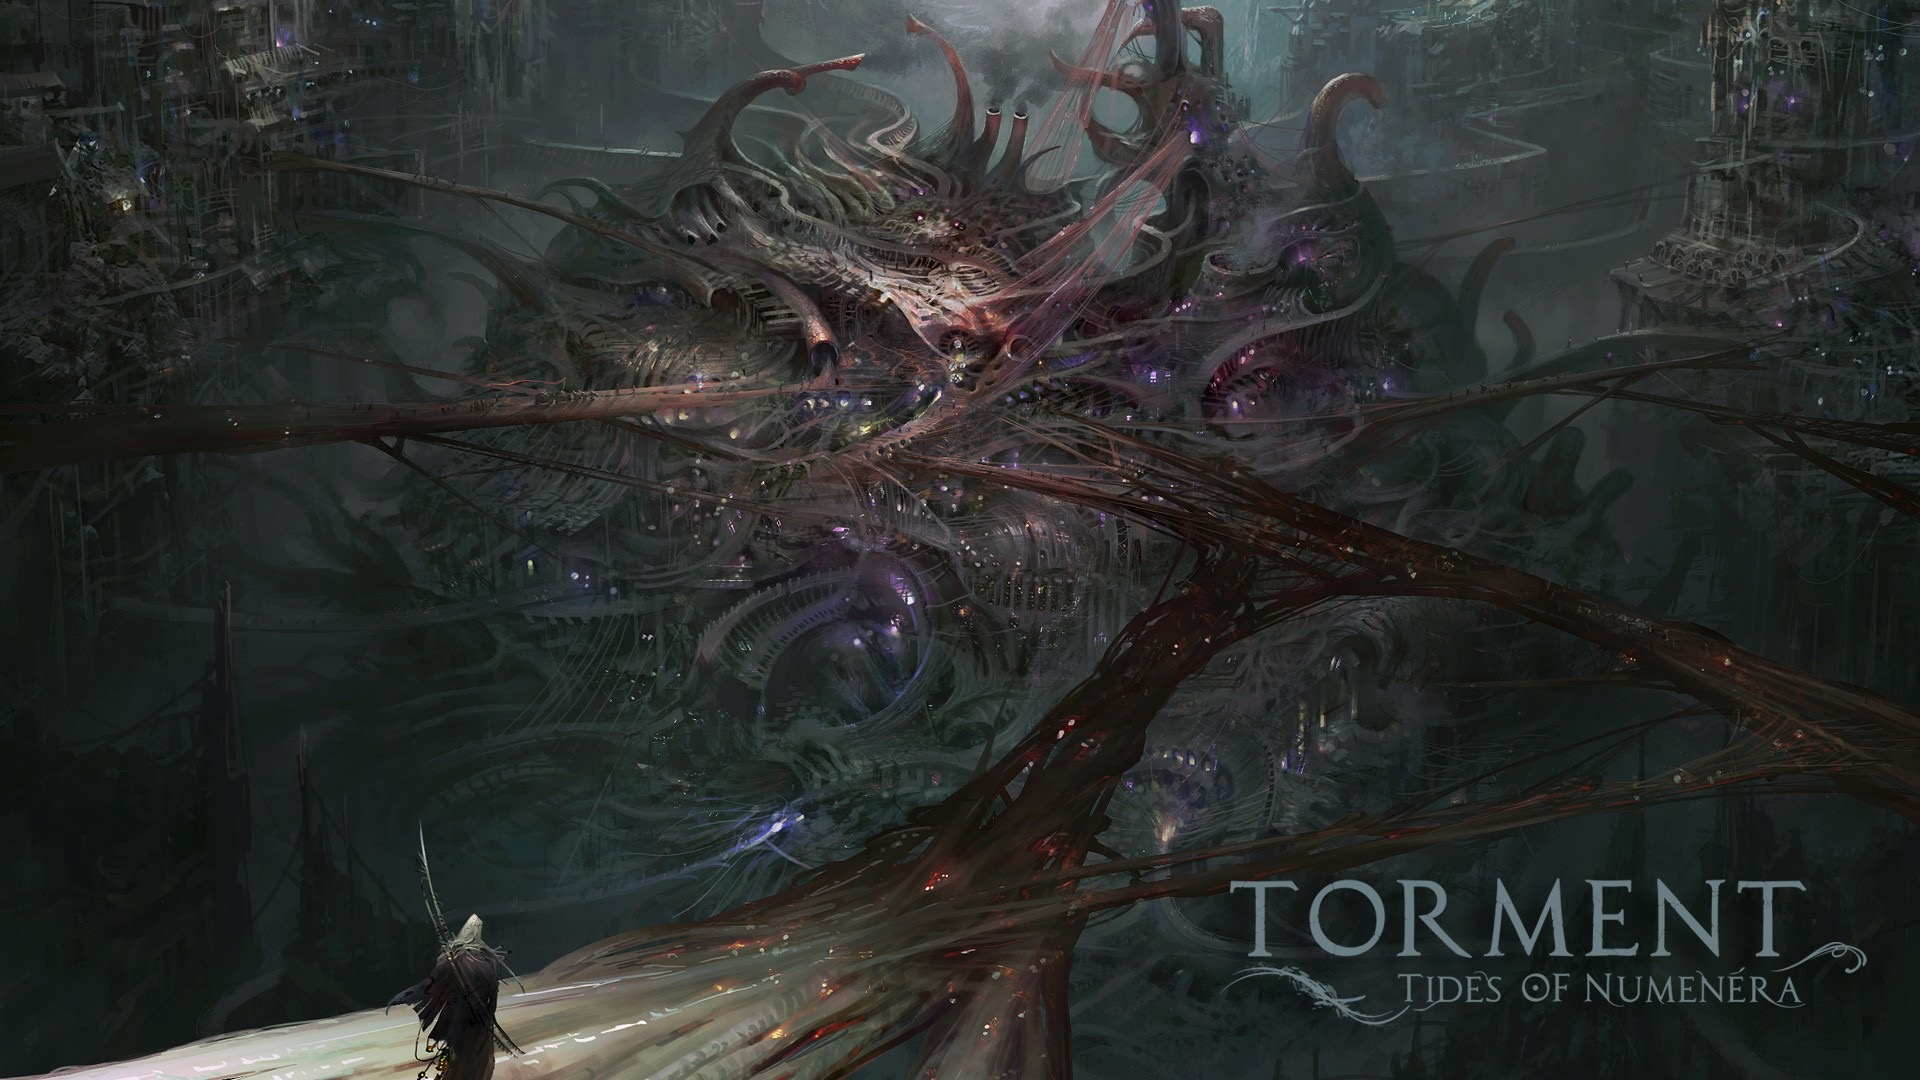 Torment: Tides of Numenera coming to consoles too